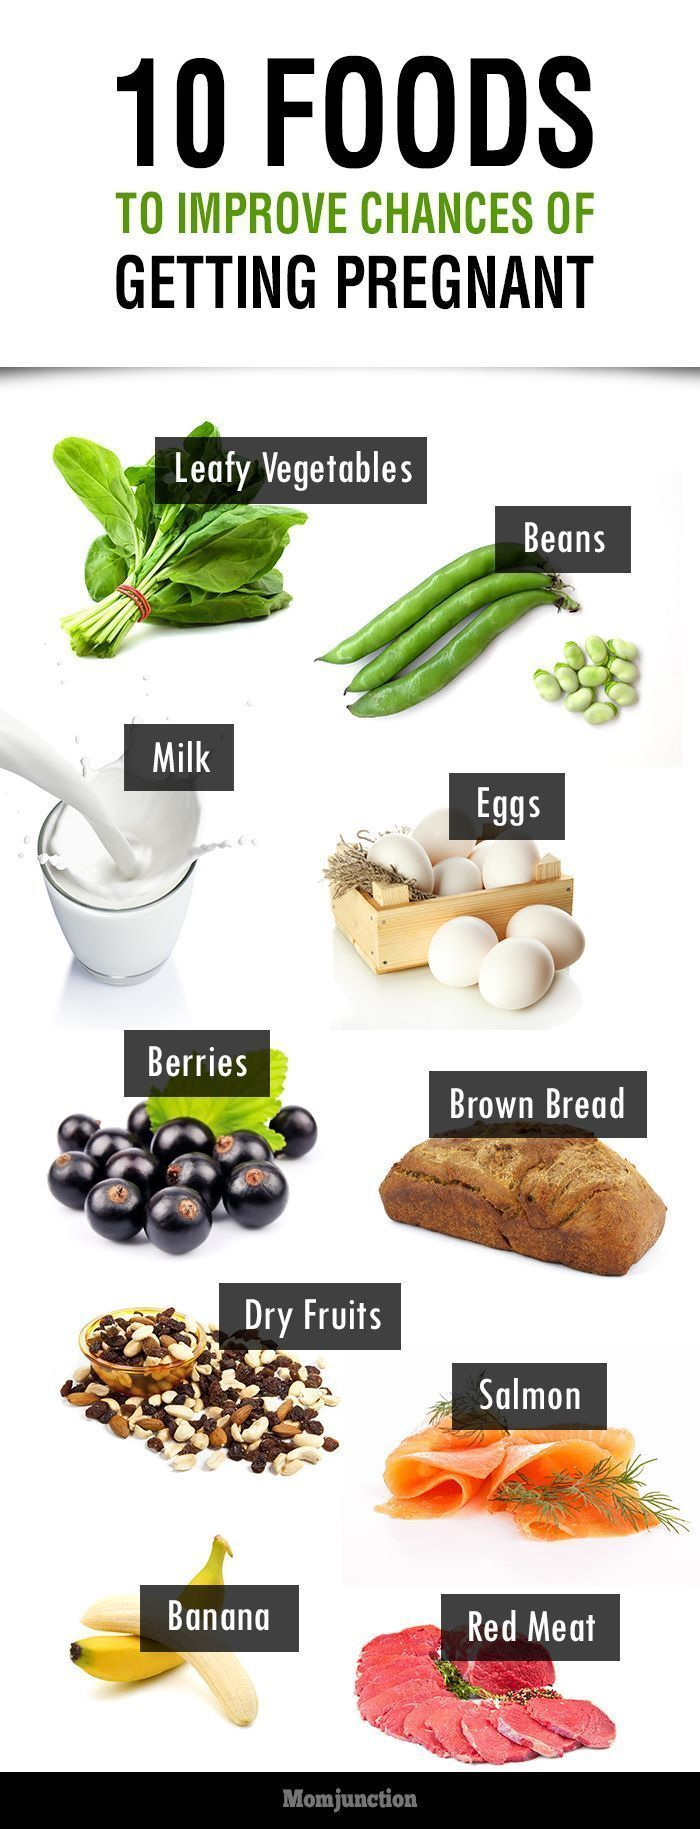 Best foods to eat for good health - 10 Best Foods To Get Pregnant Improve Pregnancy Chances Healthy Pregnancy Dietpregnancy